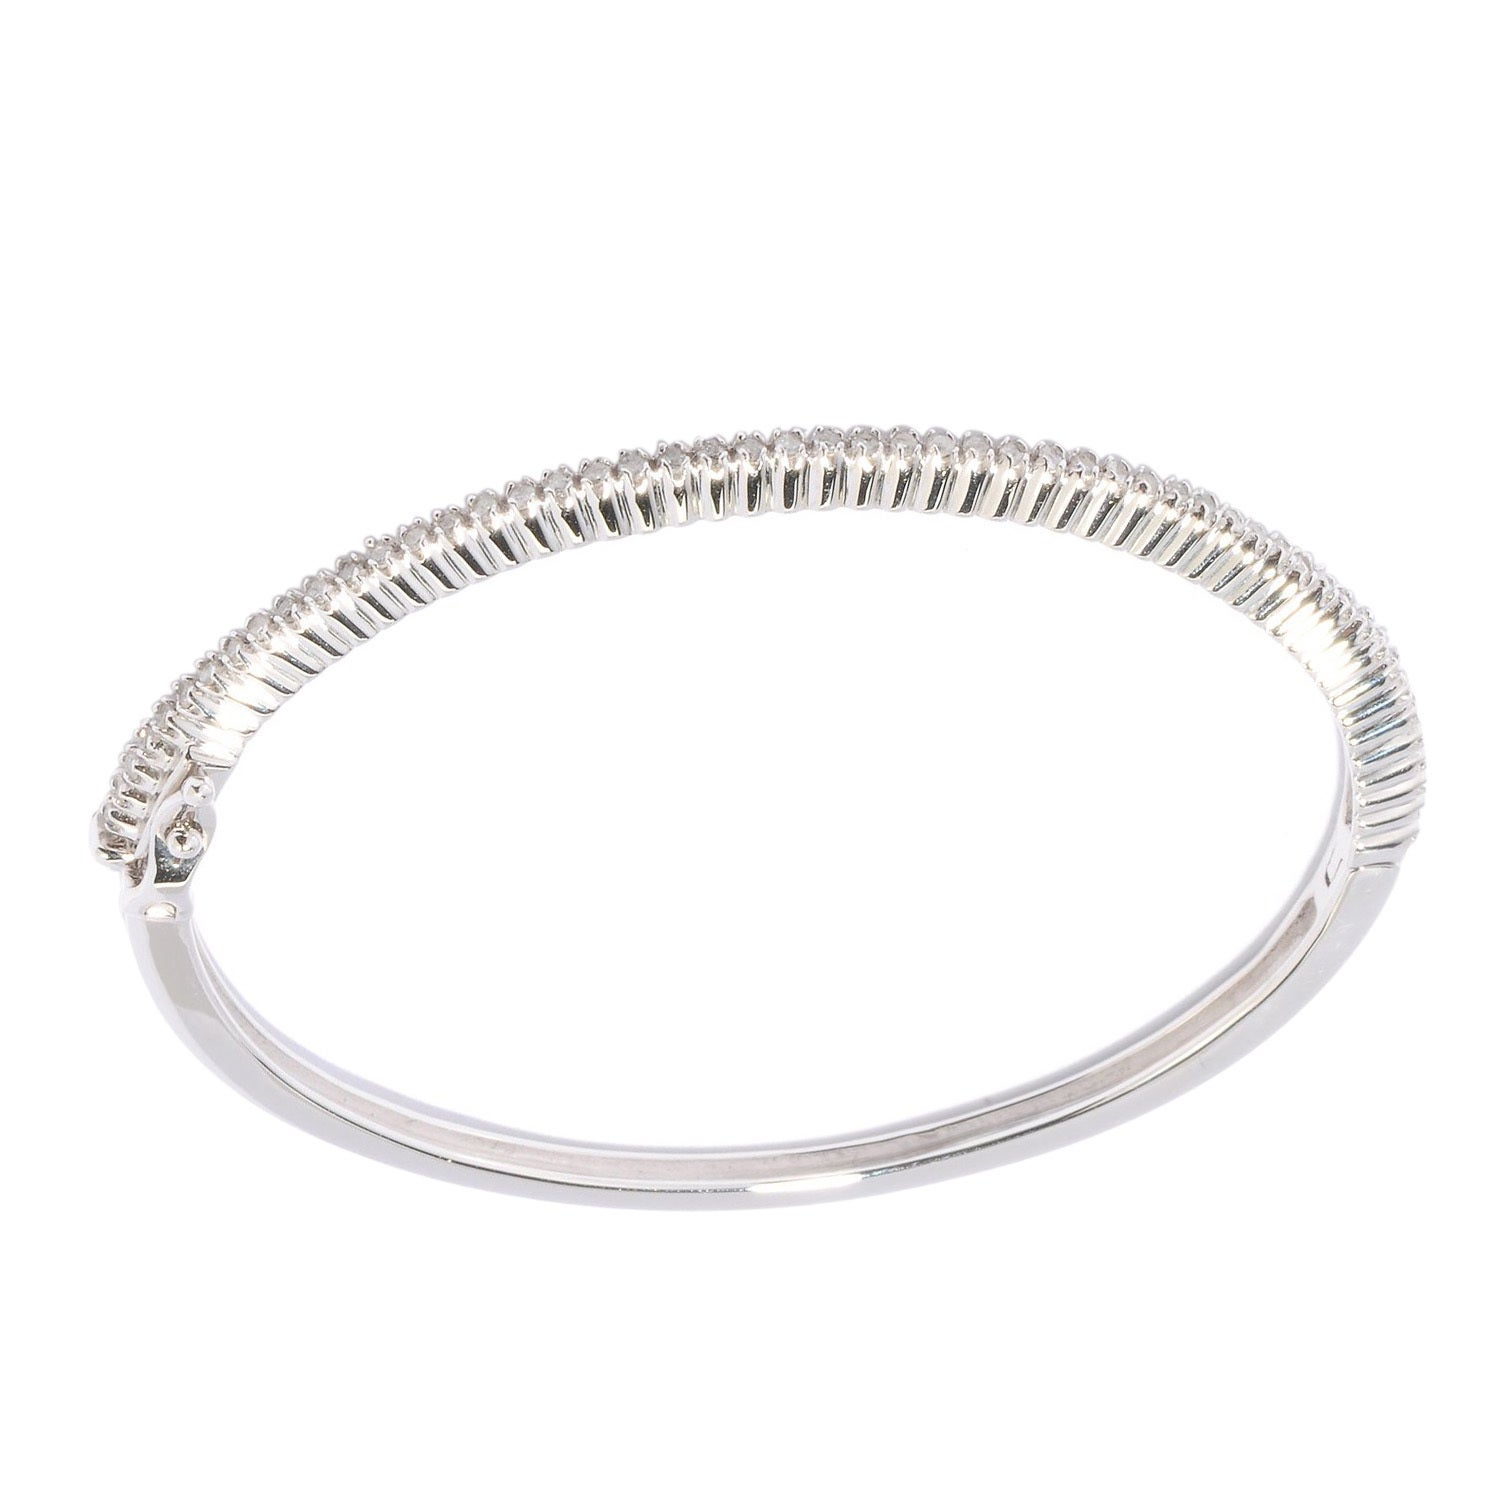 classic bangles diamond bracelet design bangle brand silver product best carve gifts women of bracelets simple style fashion beautiful jewelry plated